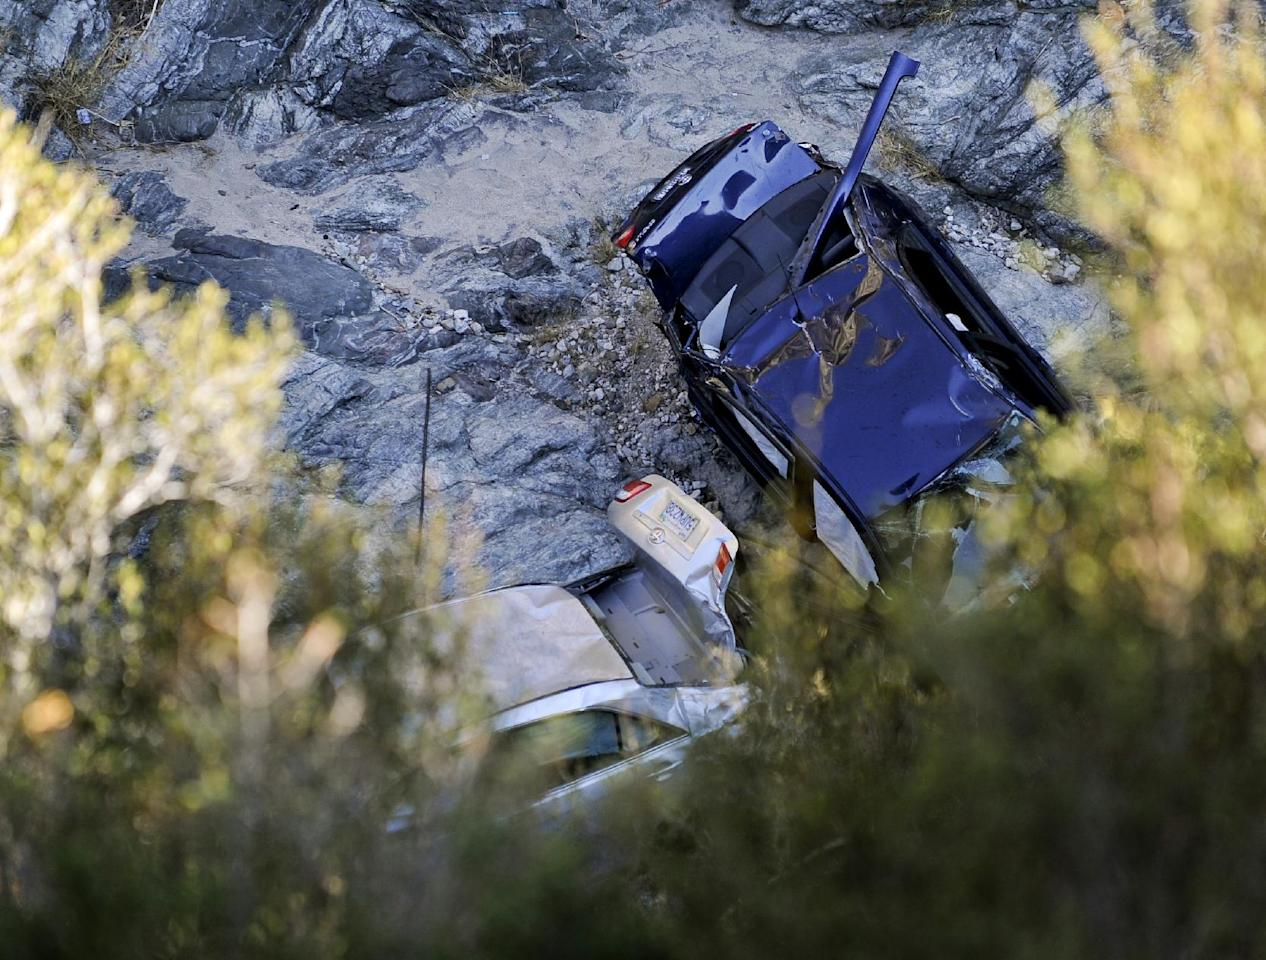 Two cars at the bottom of a remote mountain are recovered in Castaic, Calif., Friday, Sept. 30, 2011 . David Lavau, whose car had plunged 200 feet off a remote mountain road, was found yesterday by his three adult children, who had enlisted the help of a missing persons detective. Lavau suffered multiple rib fractures, a broken arm and multiple fractures in his back. While he was being rescued, another vehicle was found nearby, its driver dead. Authorities don't know if that vehicle was involved in a collision with Lavau's car, or if it was a separate accident. (Photo/Gus Ruelas)